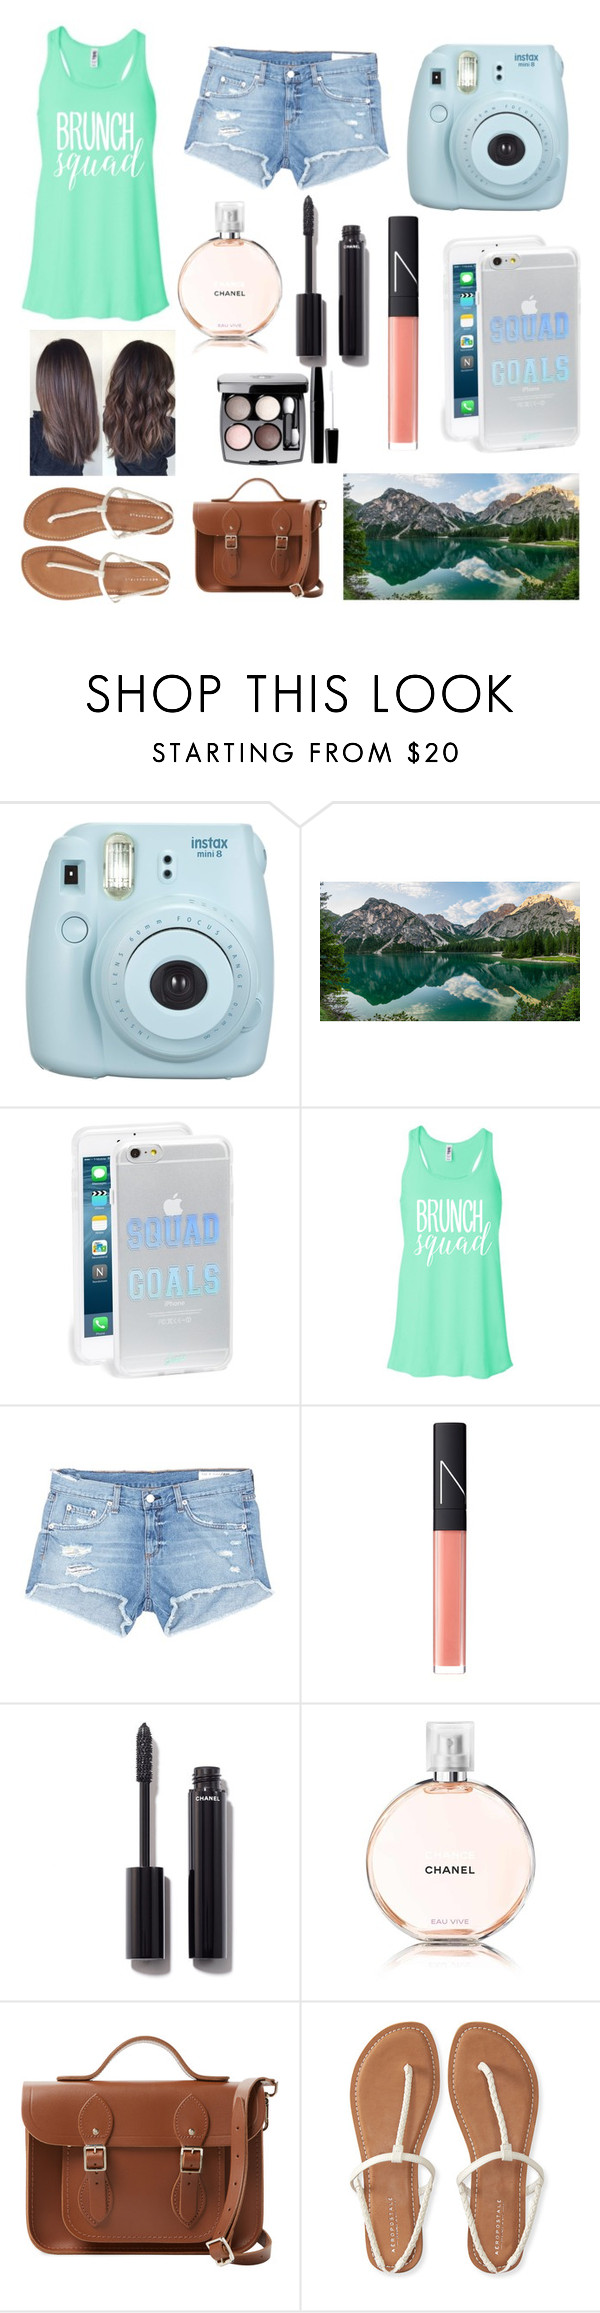 """Untitled #40"" by dierksandbilly ❤ liked on Polyvore featuring Alpine, Sonix, rag & bone/JEAN, NARS Cosmetics, Chanel, The Cambridge Satchel Company and Aéropostale"